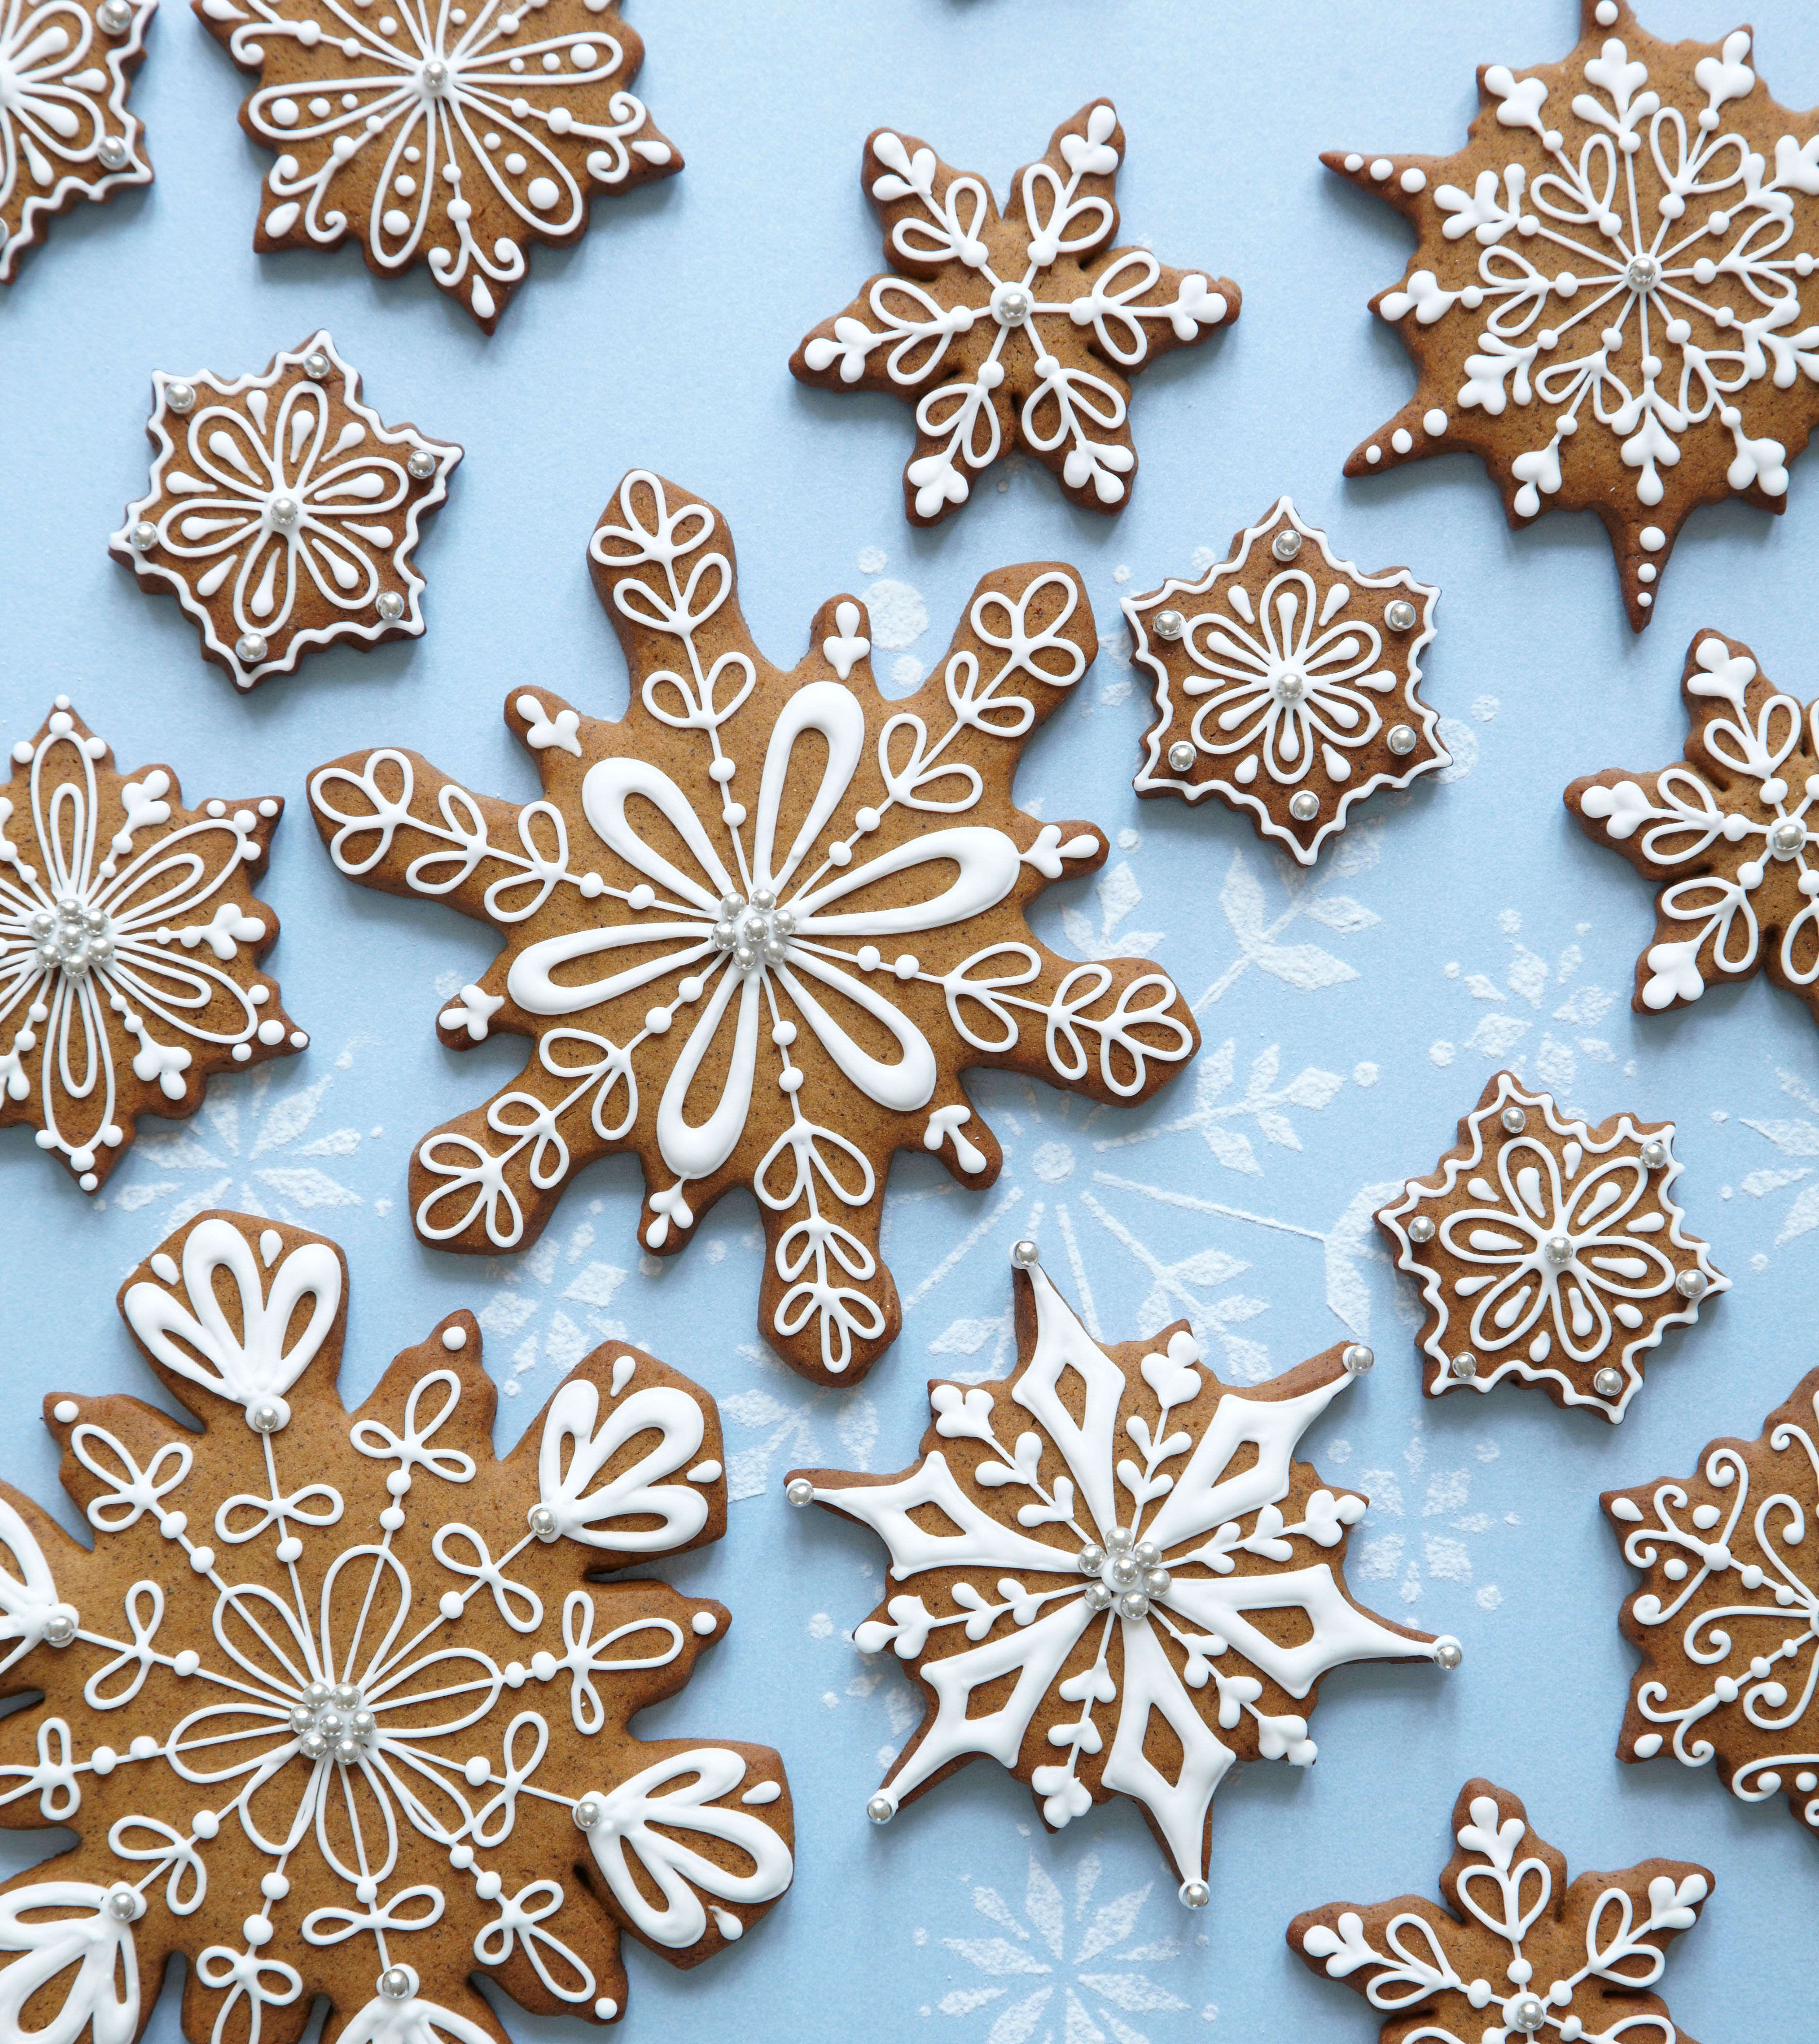 Gingerbread Snowflake Cookies Www Peggyporschen Com It S All About